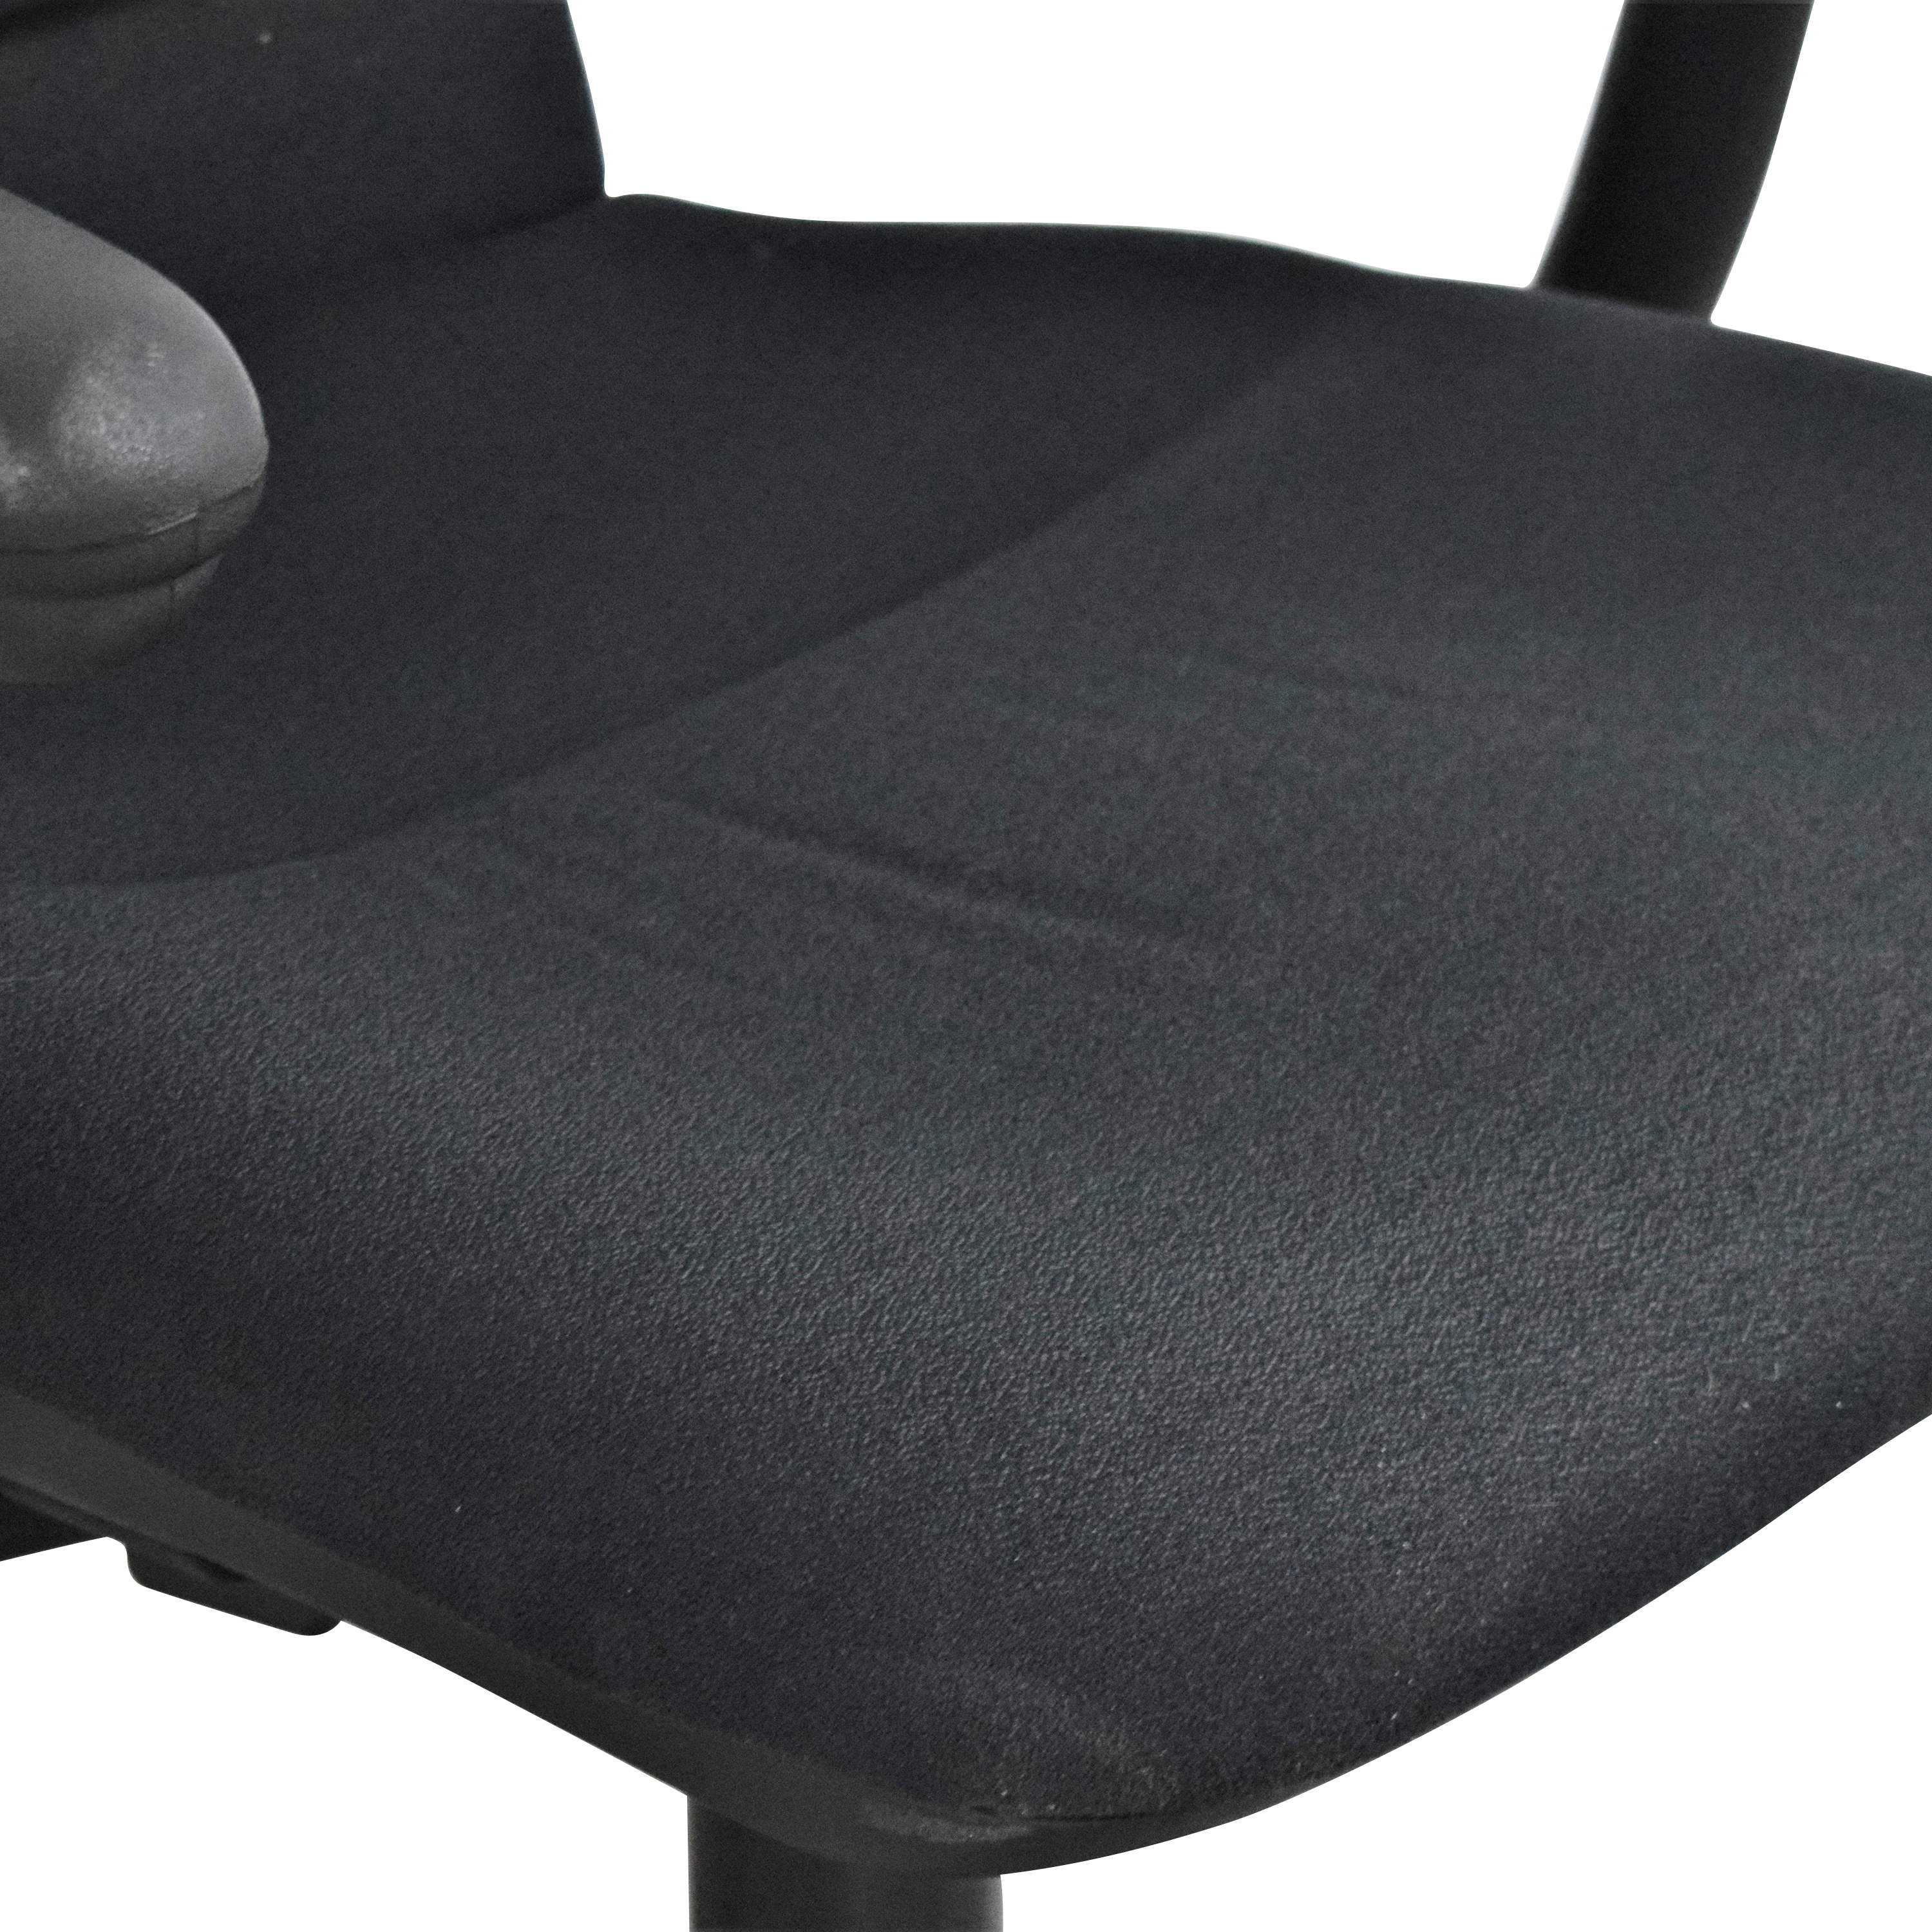 Steelcase Steelcase Desk Chair coupon